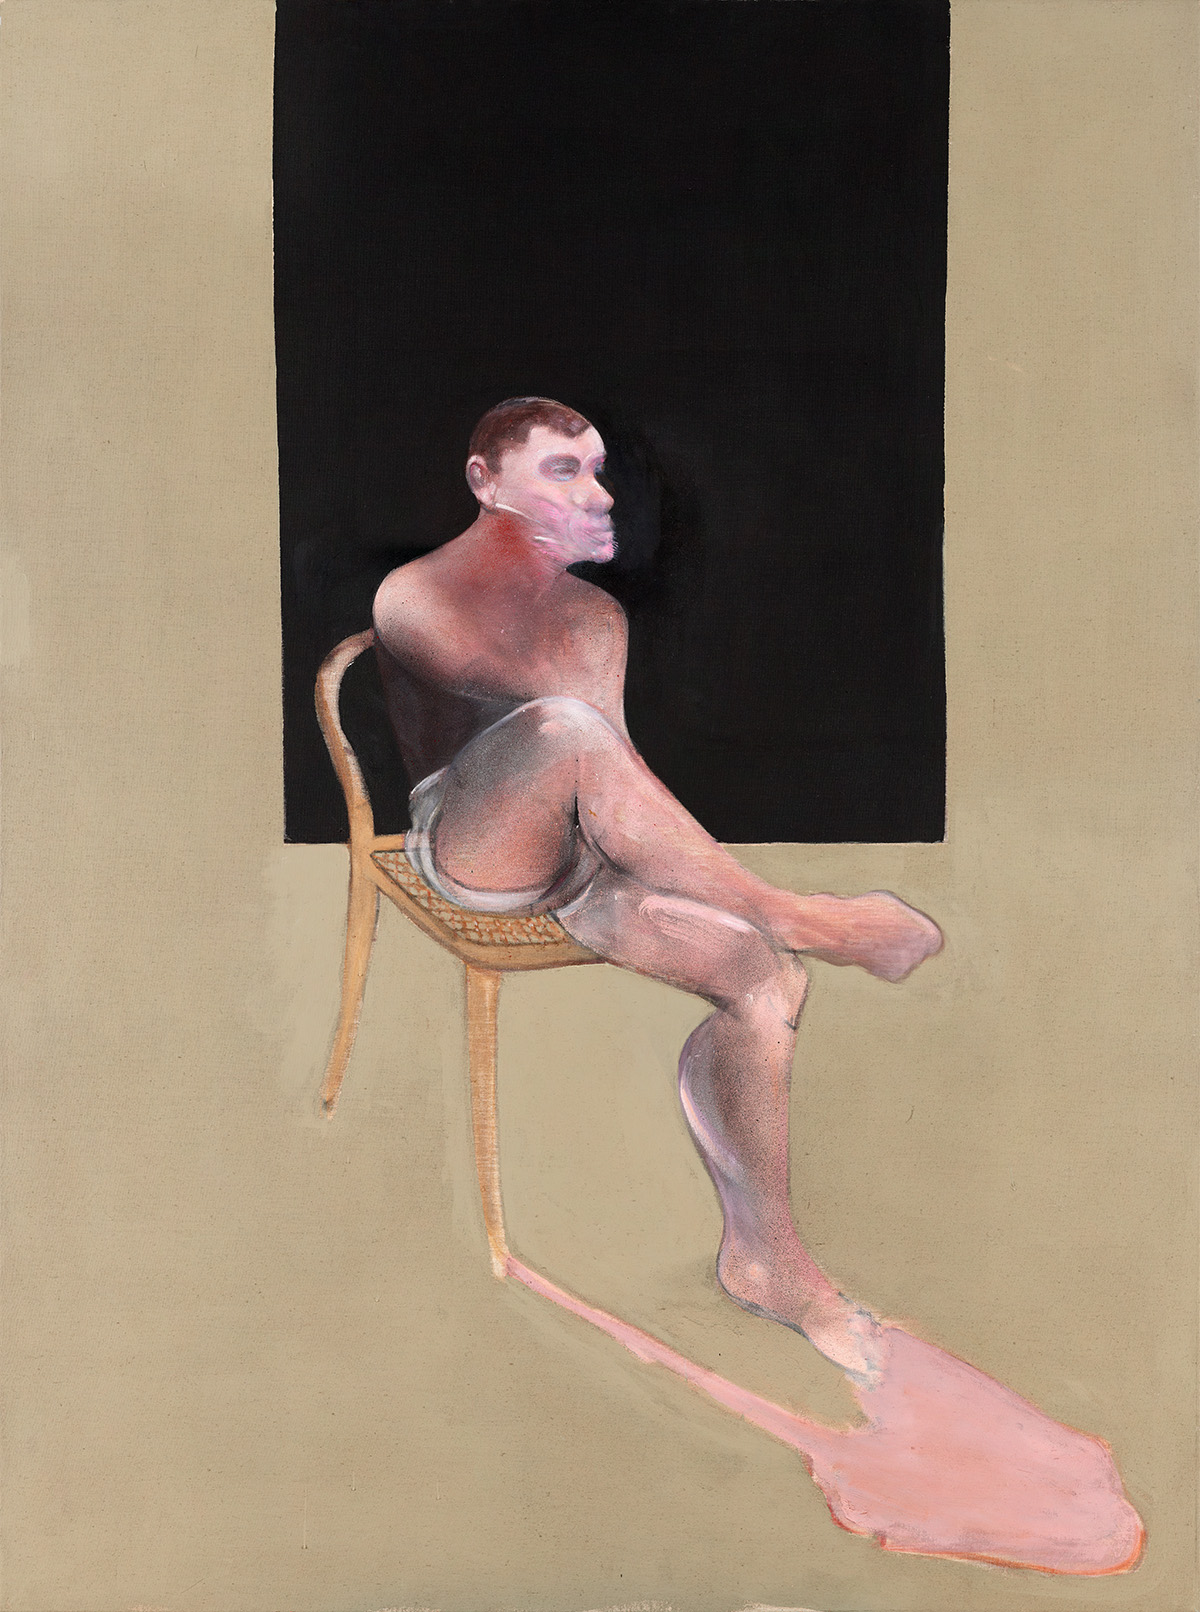 Francis Bacon, Portrait of John Edwards, 1988. Oil and aerosol paint on canvas. CR number 88-06. © The Estate of Francis Bacon / DACS London 2020. All rights reserved.